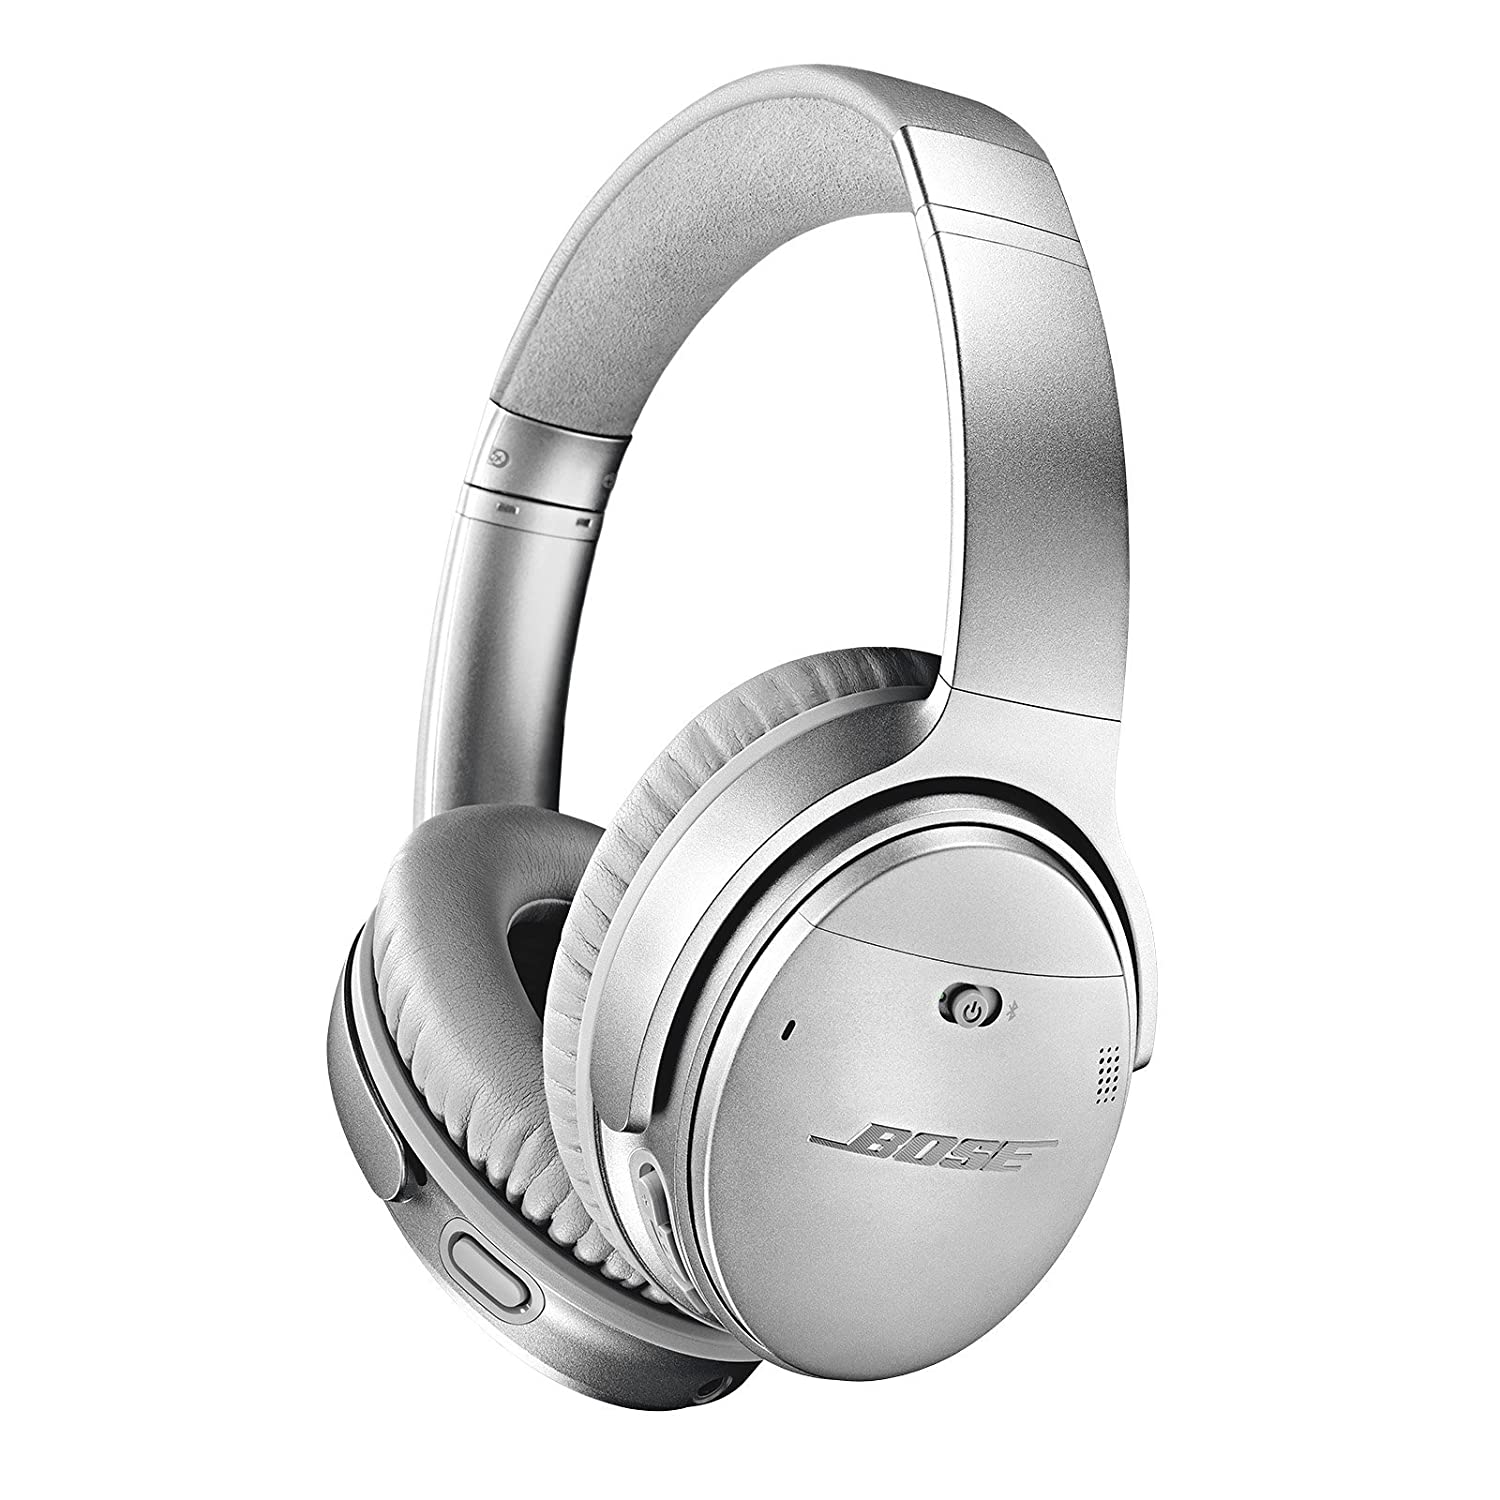 Bose Quiet Comfort 35 II Wireless Headphone